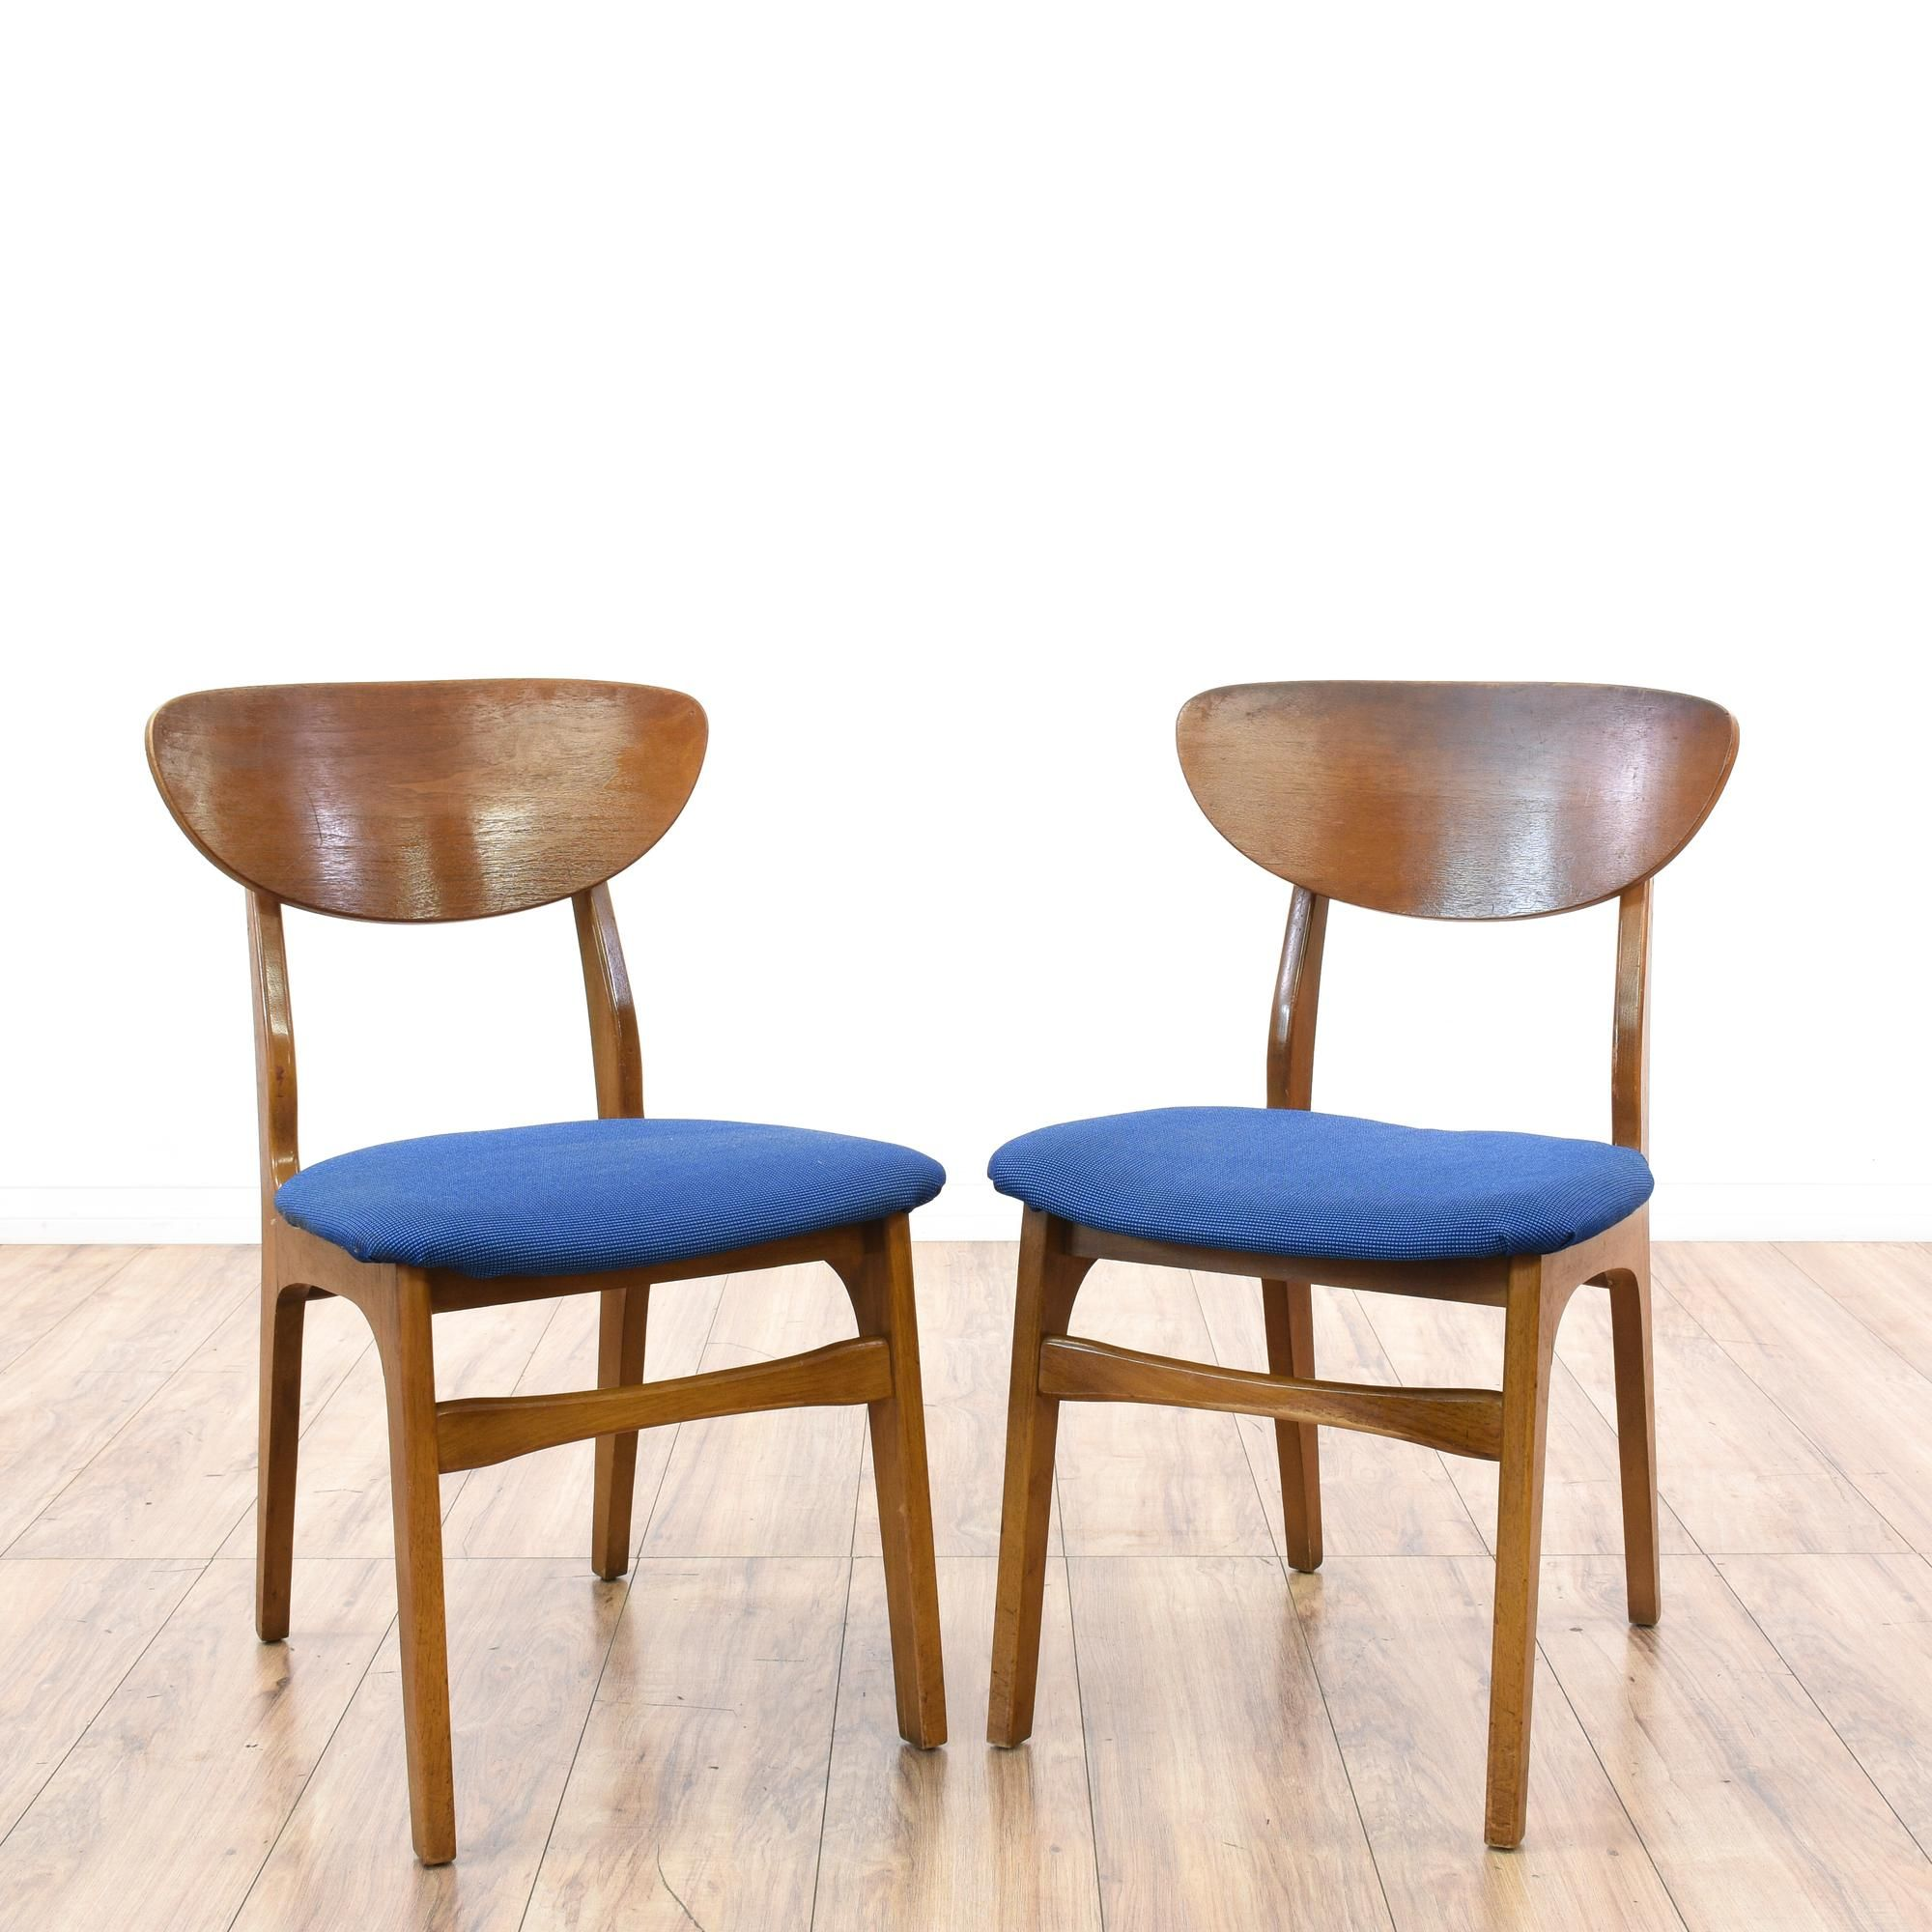 This pair of accent chairs are featured in a solid wood with a